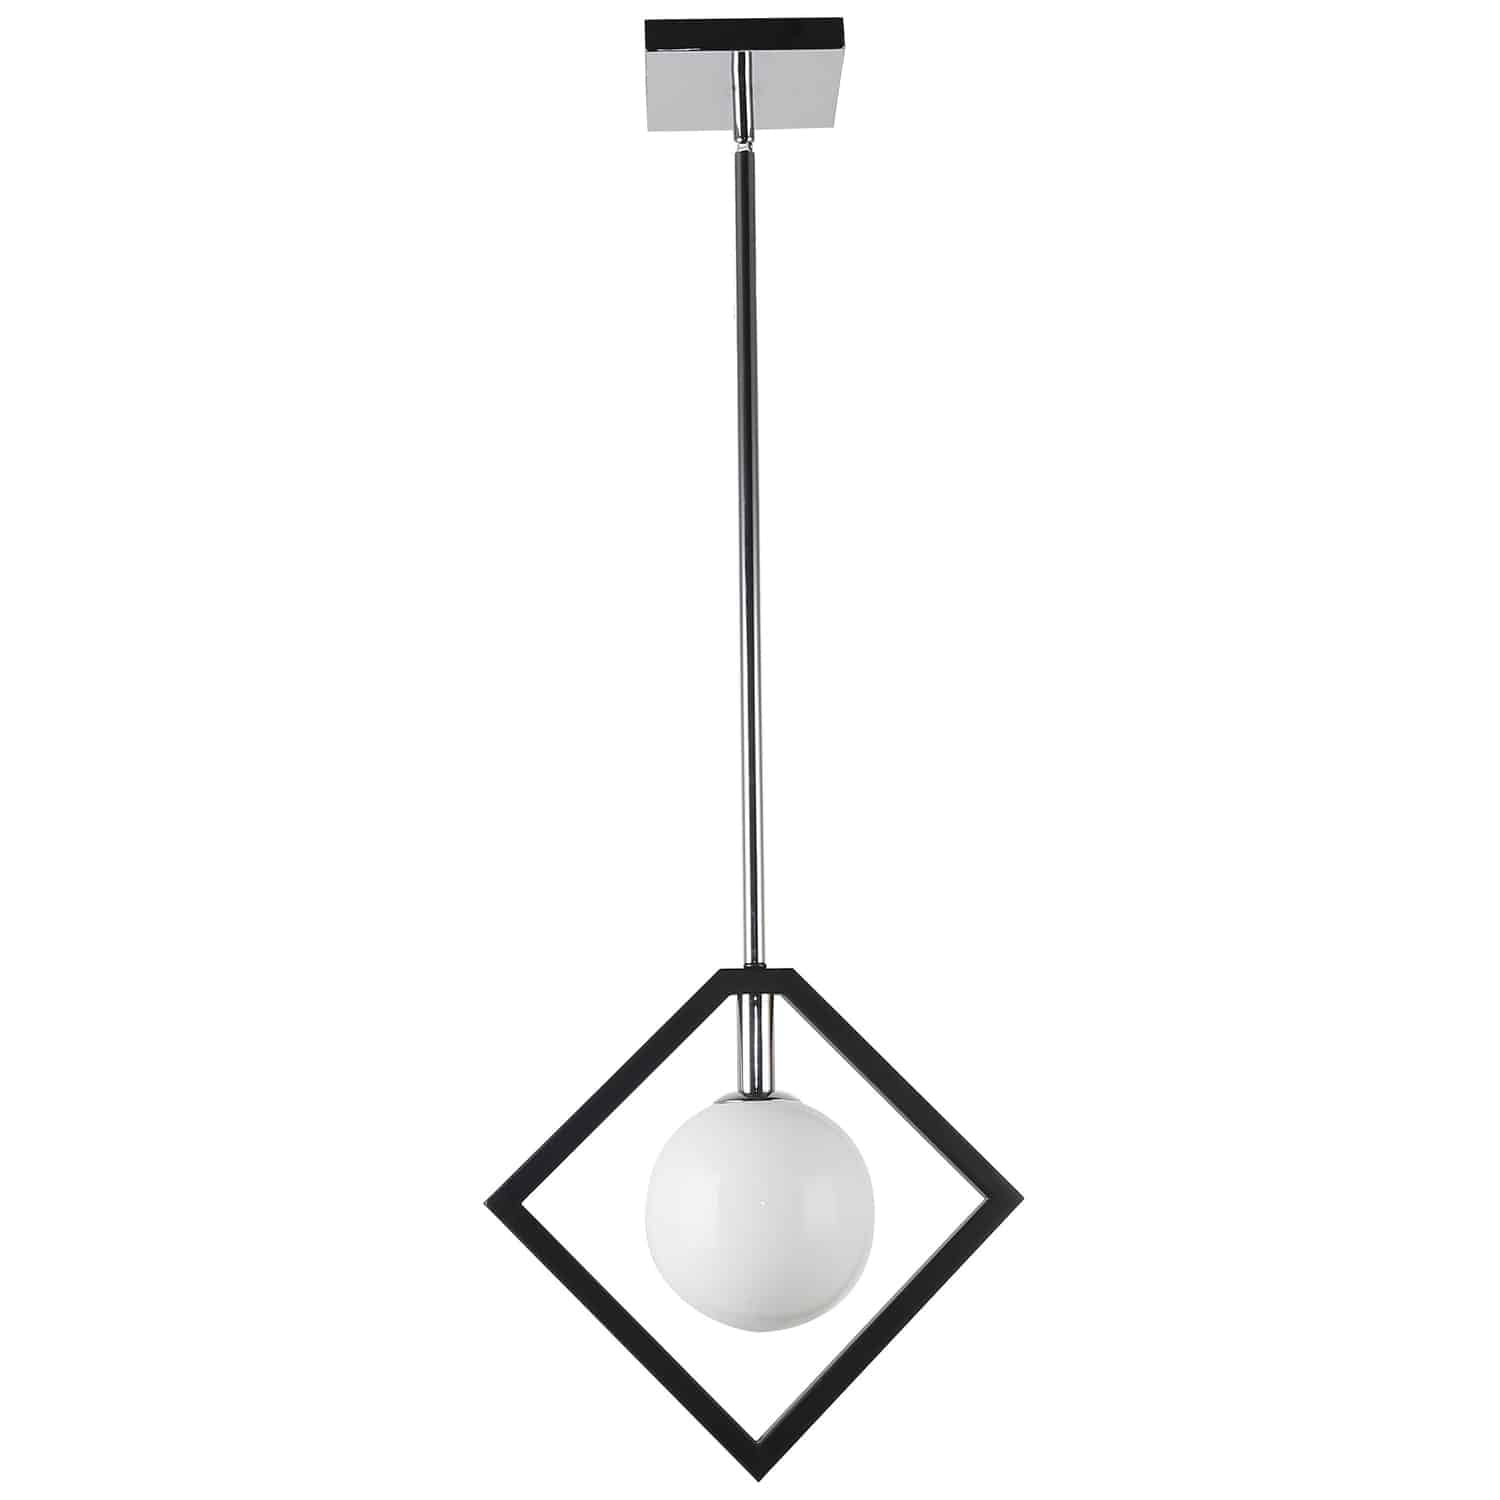 1 Light Pendant, Matte Black & Polished Chrome Finish